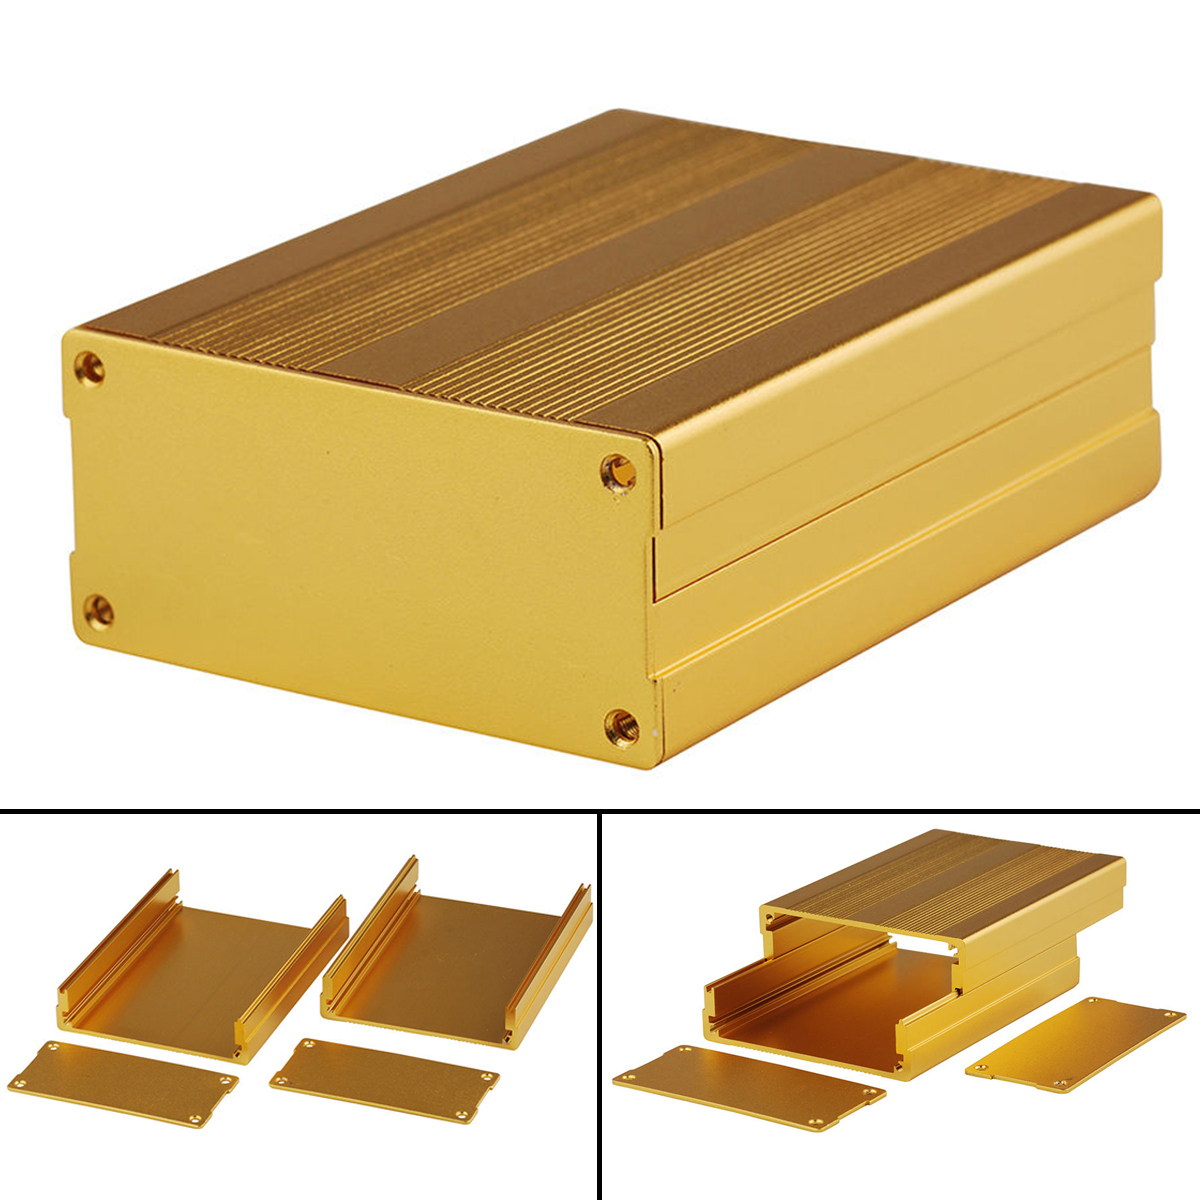 Gold Extruded Aluminum Enclosure Electronic Project Amplifier Circuit Board Box Case 100x76x35mm 3206 amplifier aluminum rounded chassis preamplifier dac amp case decoder tube amp enclosure box 320 76 250mm